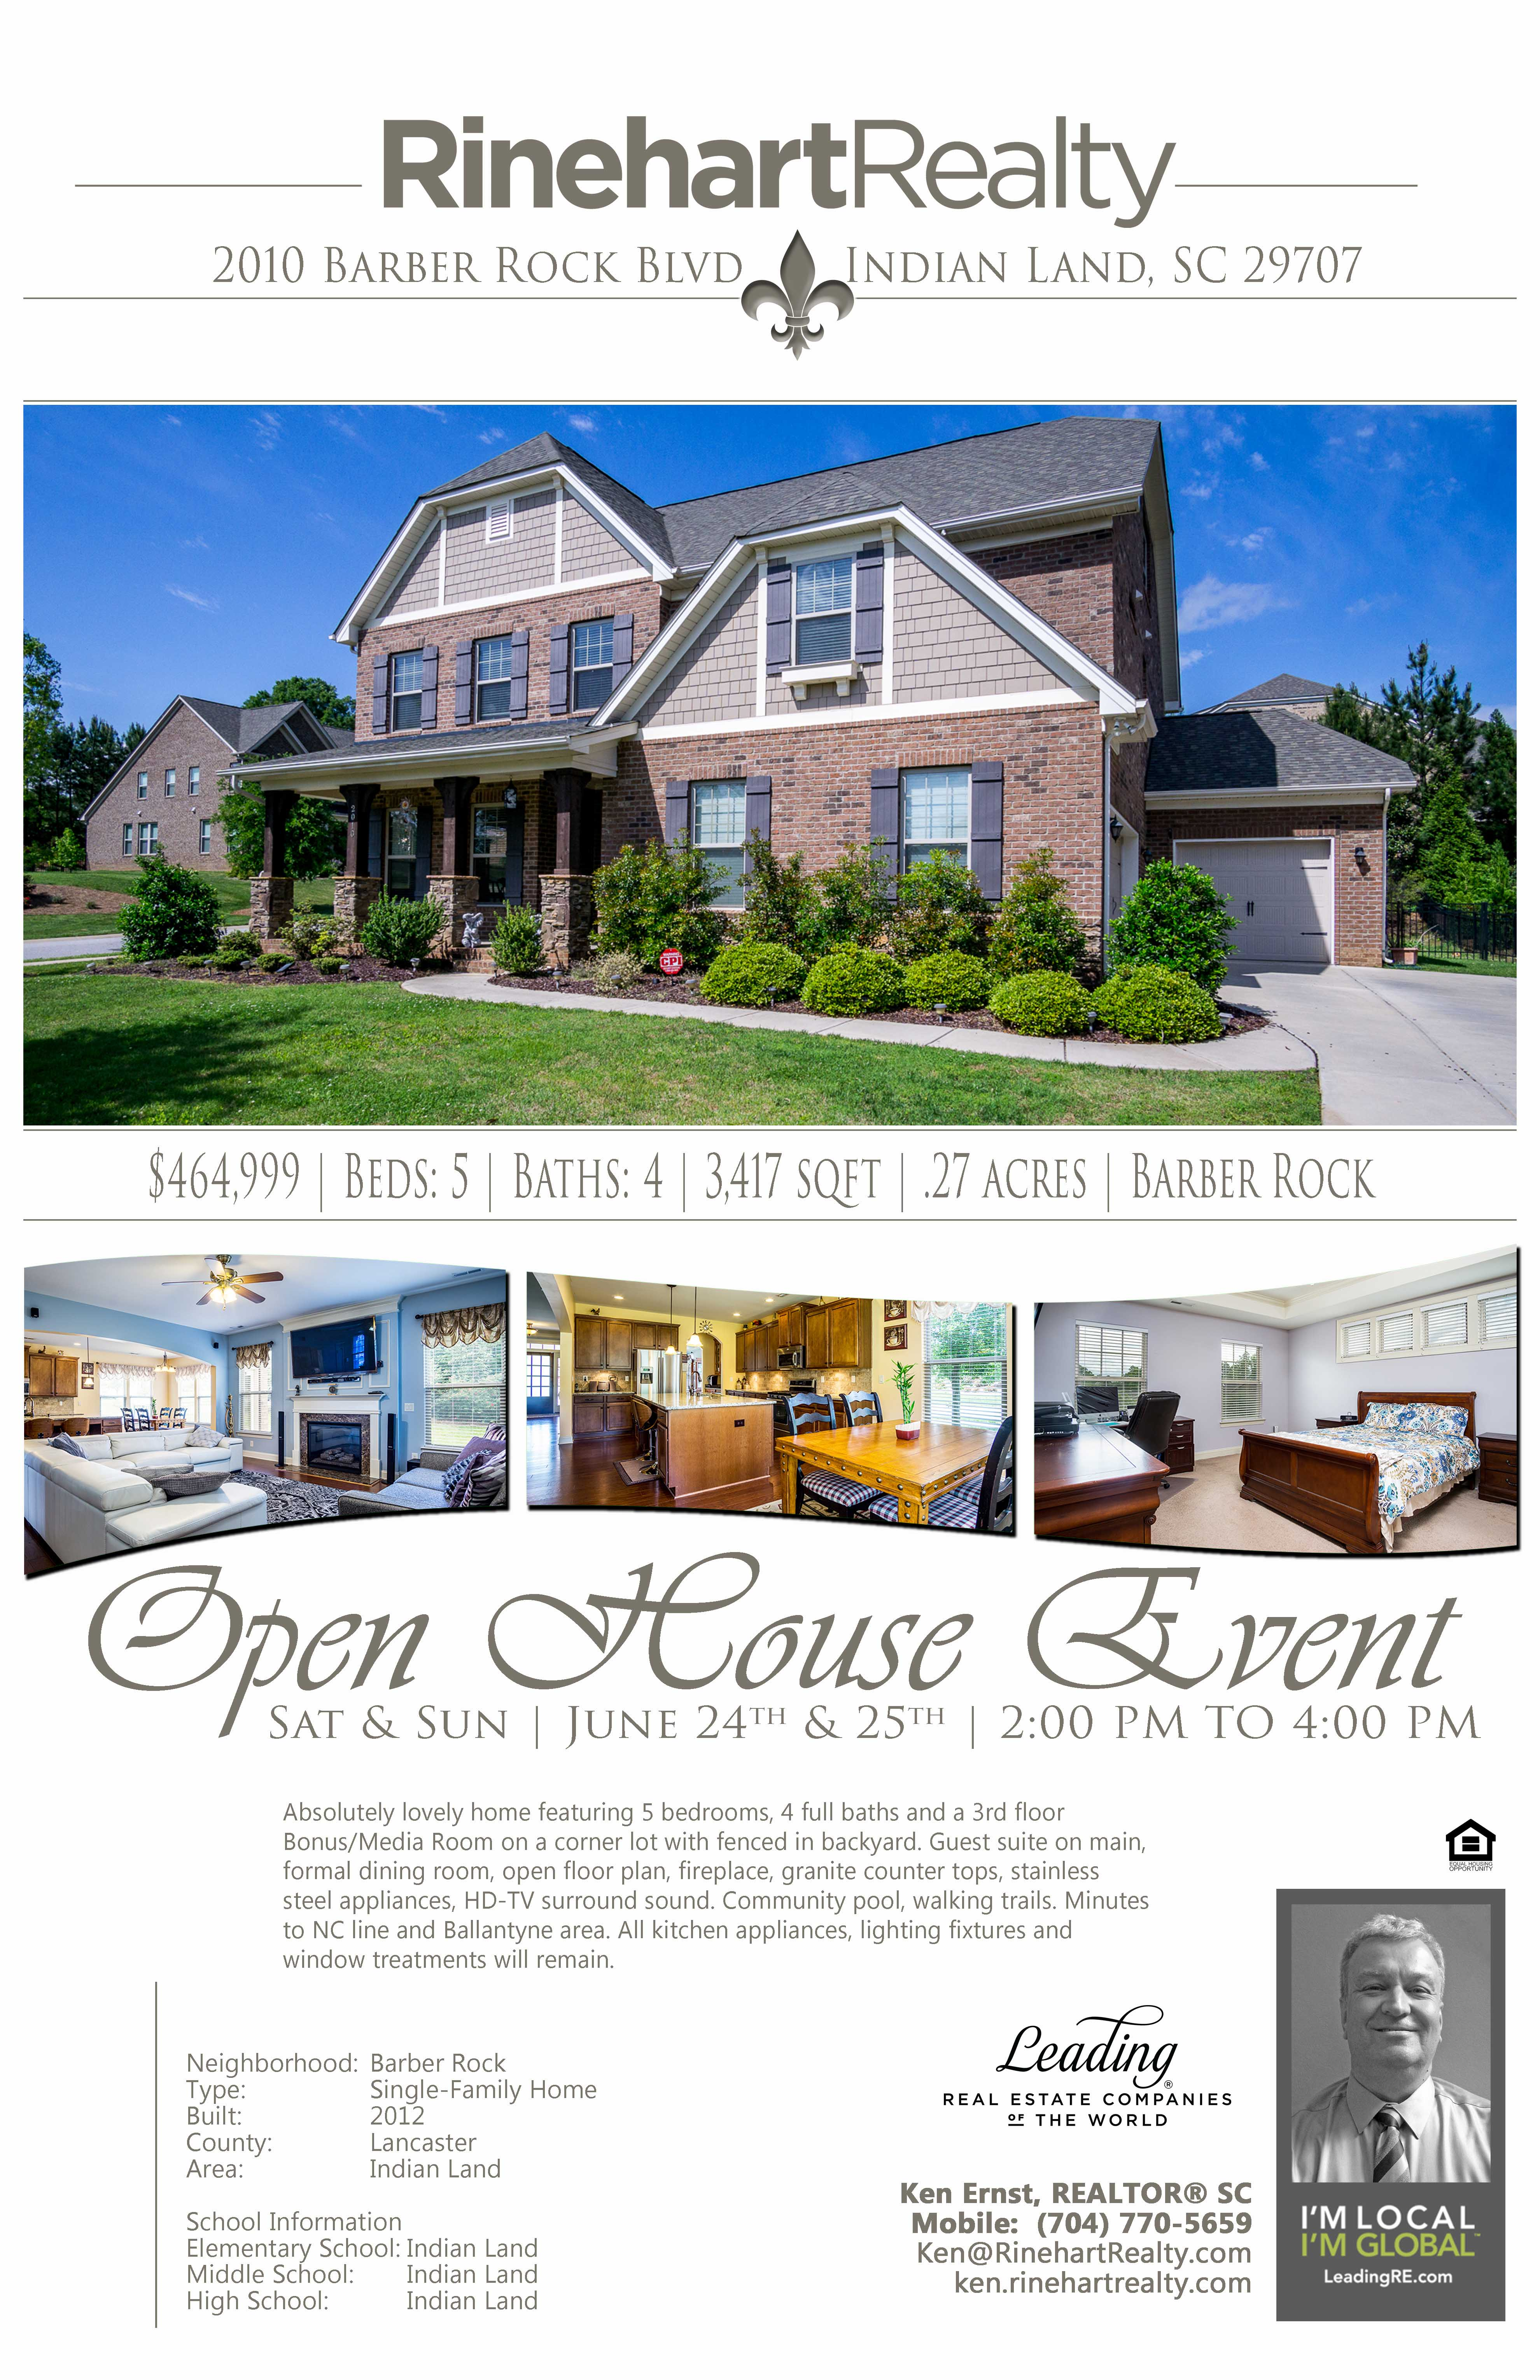 OPEN HOUSES: Saturday, June 24th | 2:00 pm to 4:00 pm Saturday, June 25th | 2:00 pm to 4:00 pm 2010 Barber Rock Boulevard, Indian Land, SC 29707 PRICE: $464,999 Beds: 5 | Baths: 4 | 3,4174 sqft | .27 acres Absolutely lovely home featuring 5 bedrooms, 4 full baths and a 3rd floor Bonus/Media Room on a corner lot with fenced in backyard. Guest suite on main, formal dining room, open floor plan, fireplace, granite counter tops, stainless steel appliances, HD-TV surround sound. Community pool, walking trails. Minutes to NC line and Ballantyne area. All kitchen appliances, lighting fixtures and window treatments will remain. Hosted by: Ken Ernst, REALTOR® SC Mobile: (704) 770-5659 Ken@RinehartRealty.com ken.rinehartrealty.com